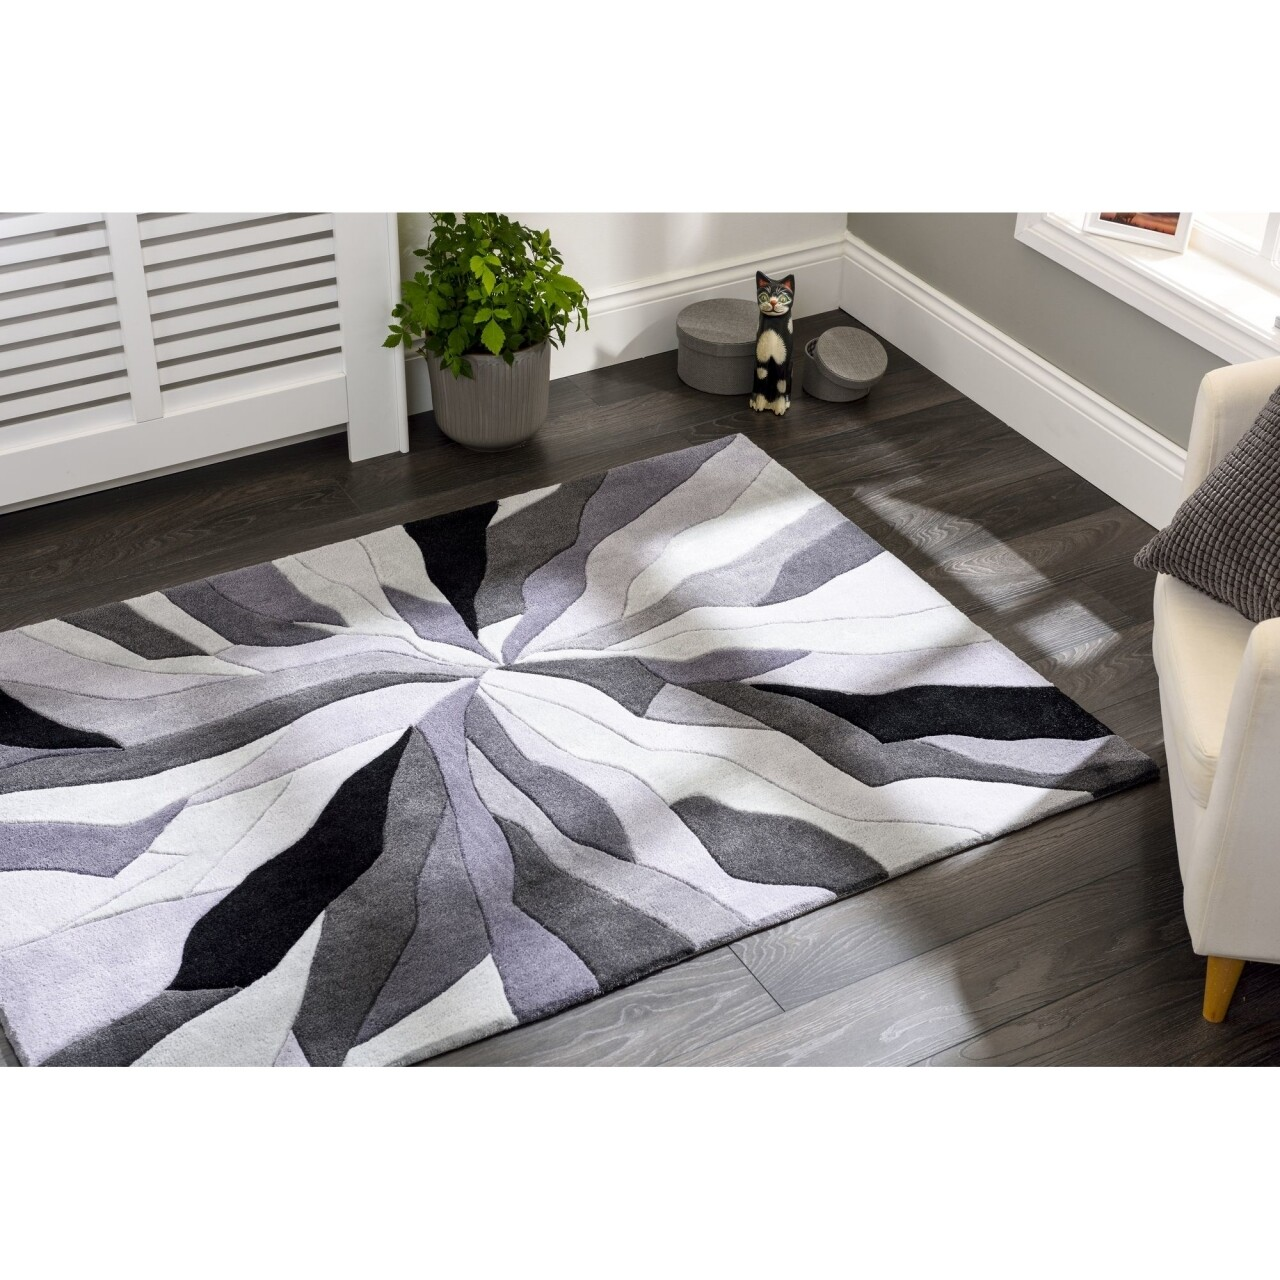 Covor Infinite Splinter Grey, Flair Rugs, 80 x 150 cm, 100% poliester, gri